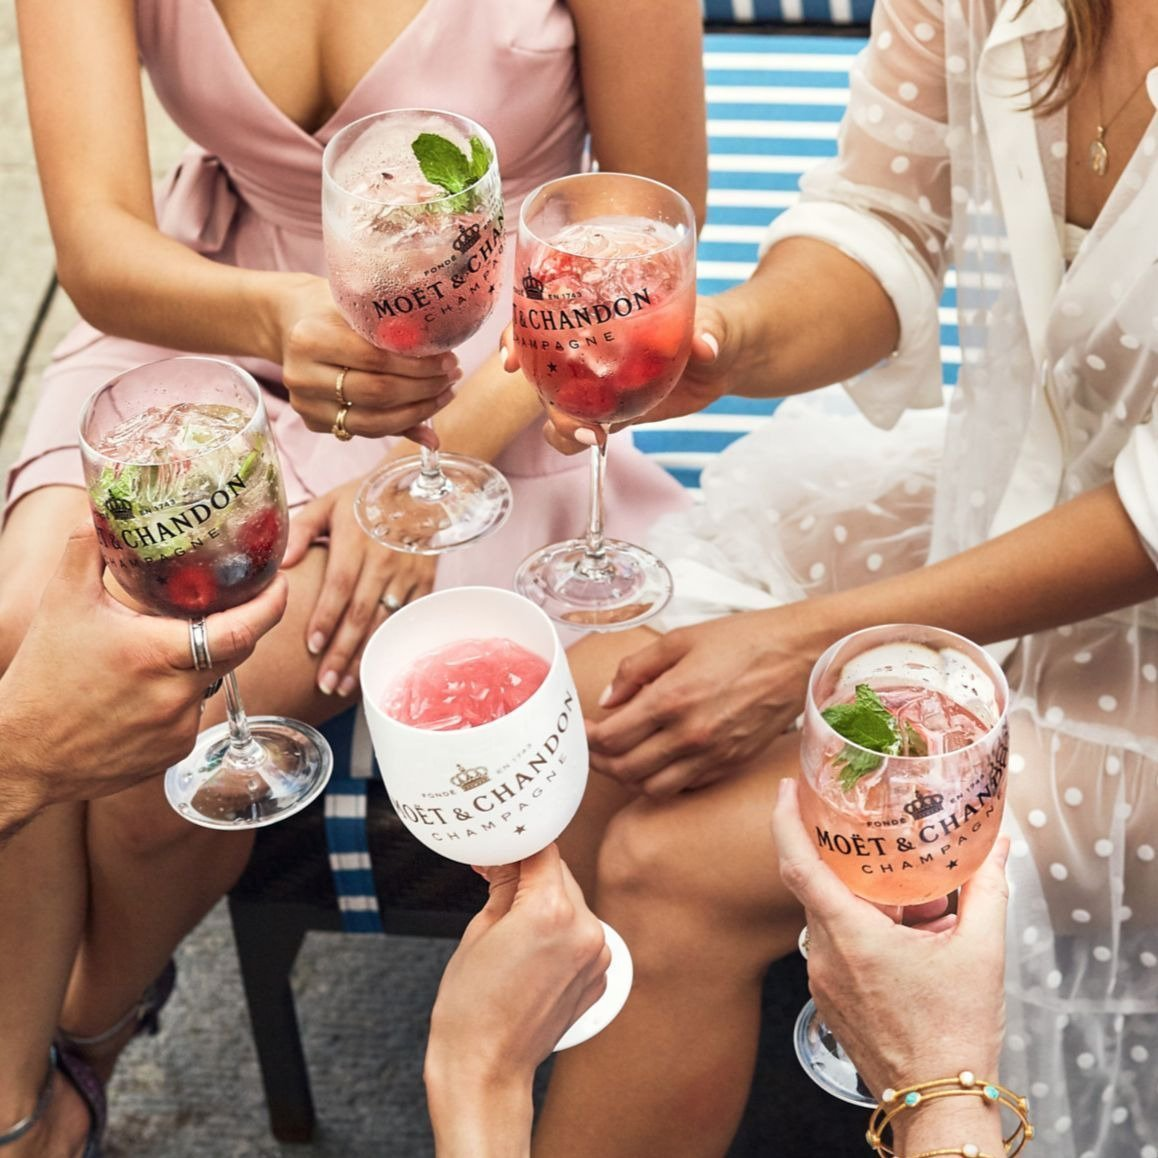 Toasting with Moët Poolside - yoursassyself.com